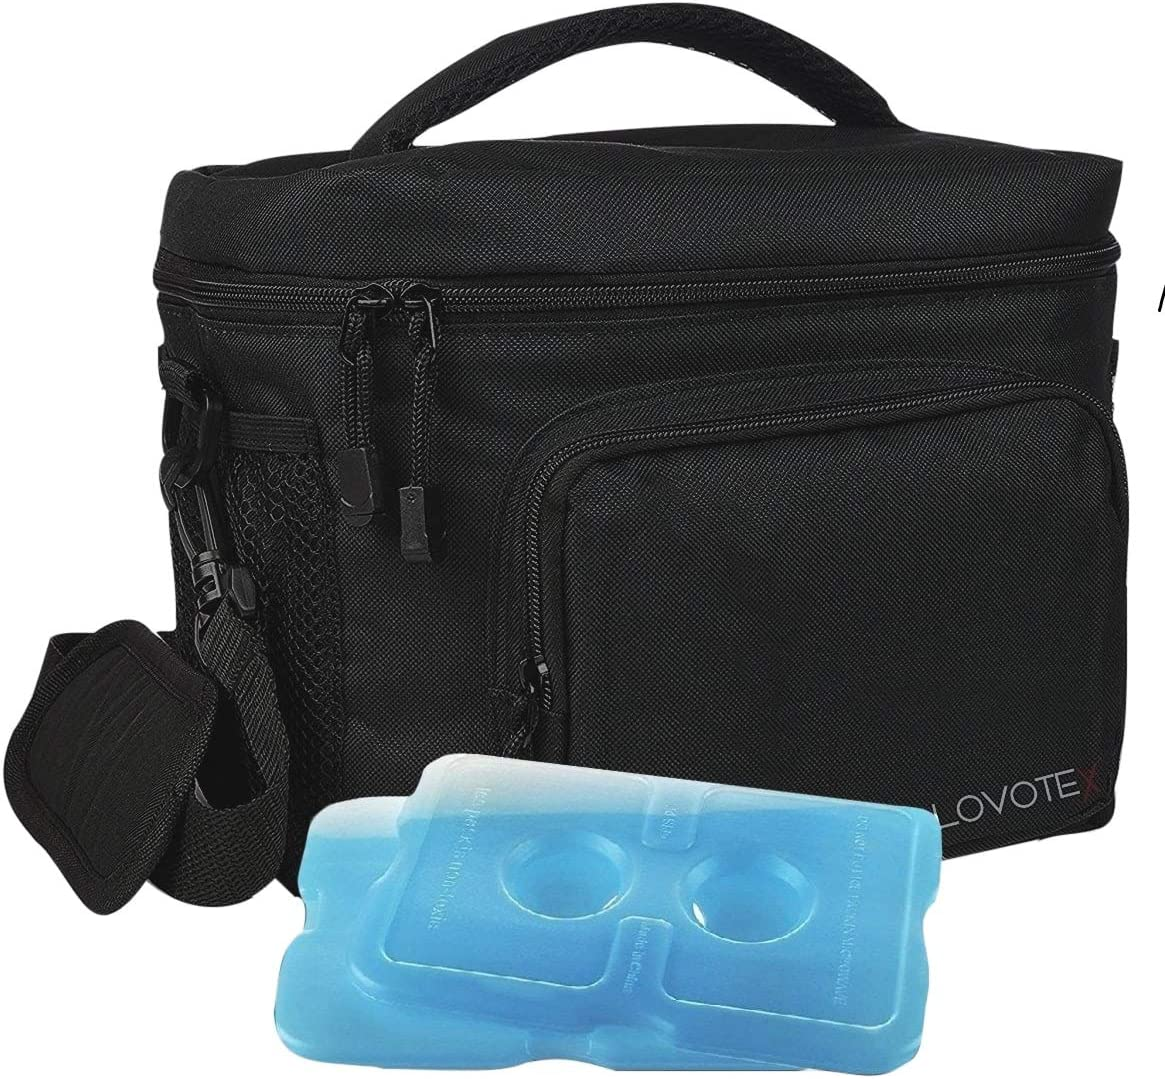 Game of Thrones Wolf Cooler or Thermos Picnic Bag Insulated Folding Lunchbox